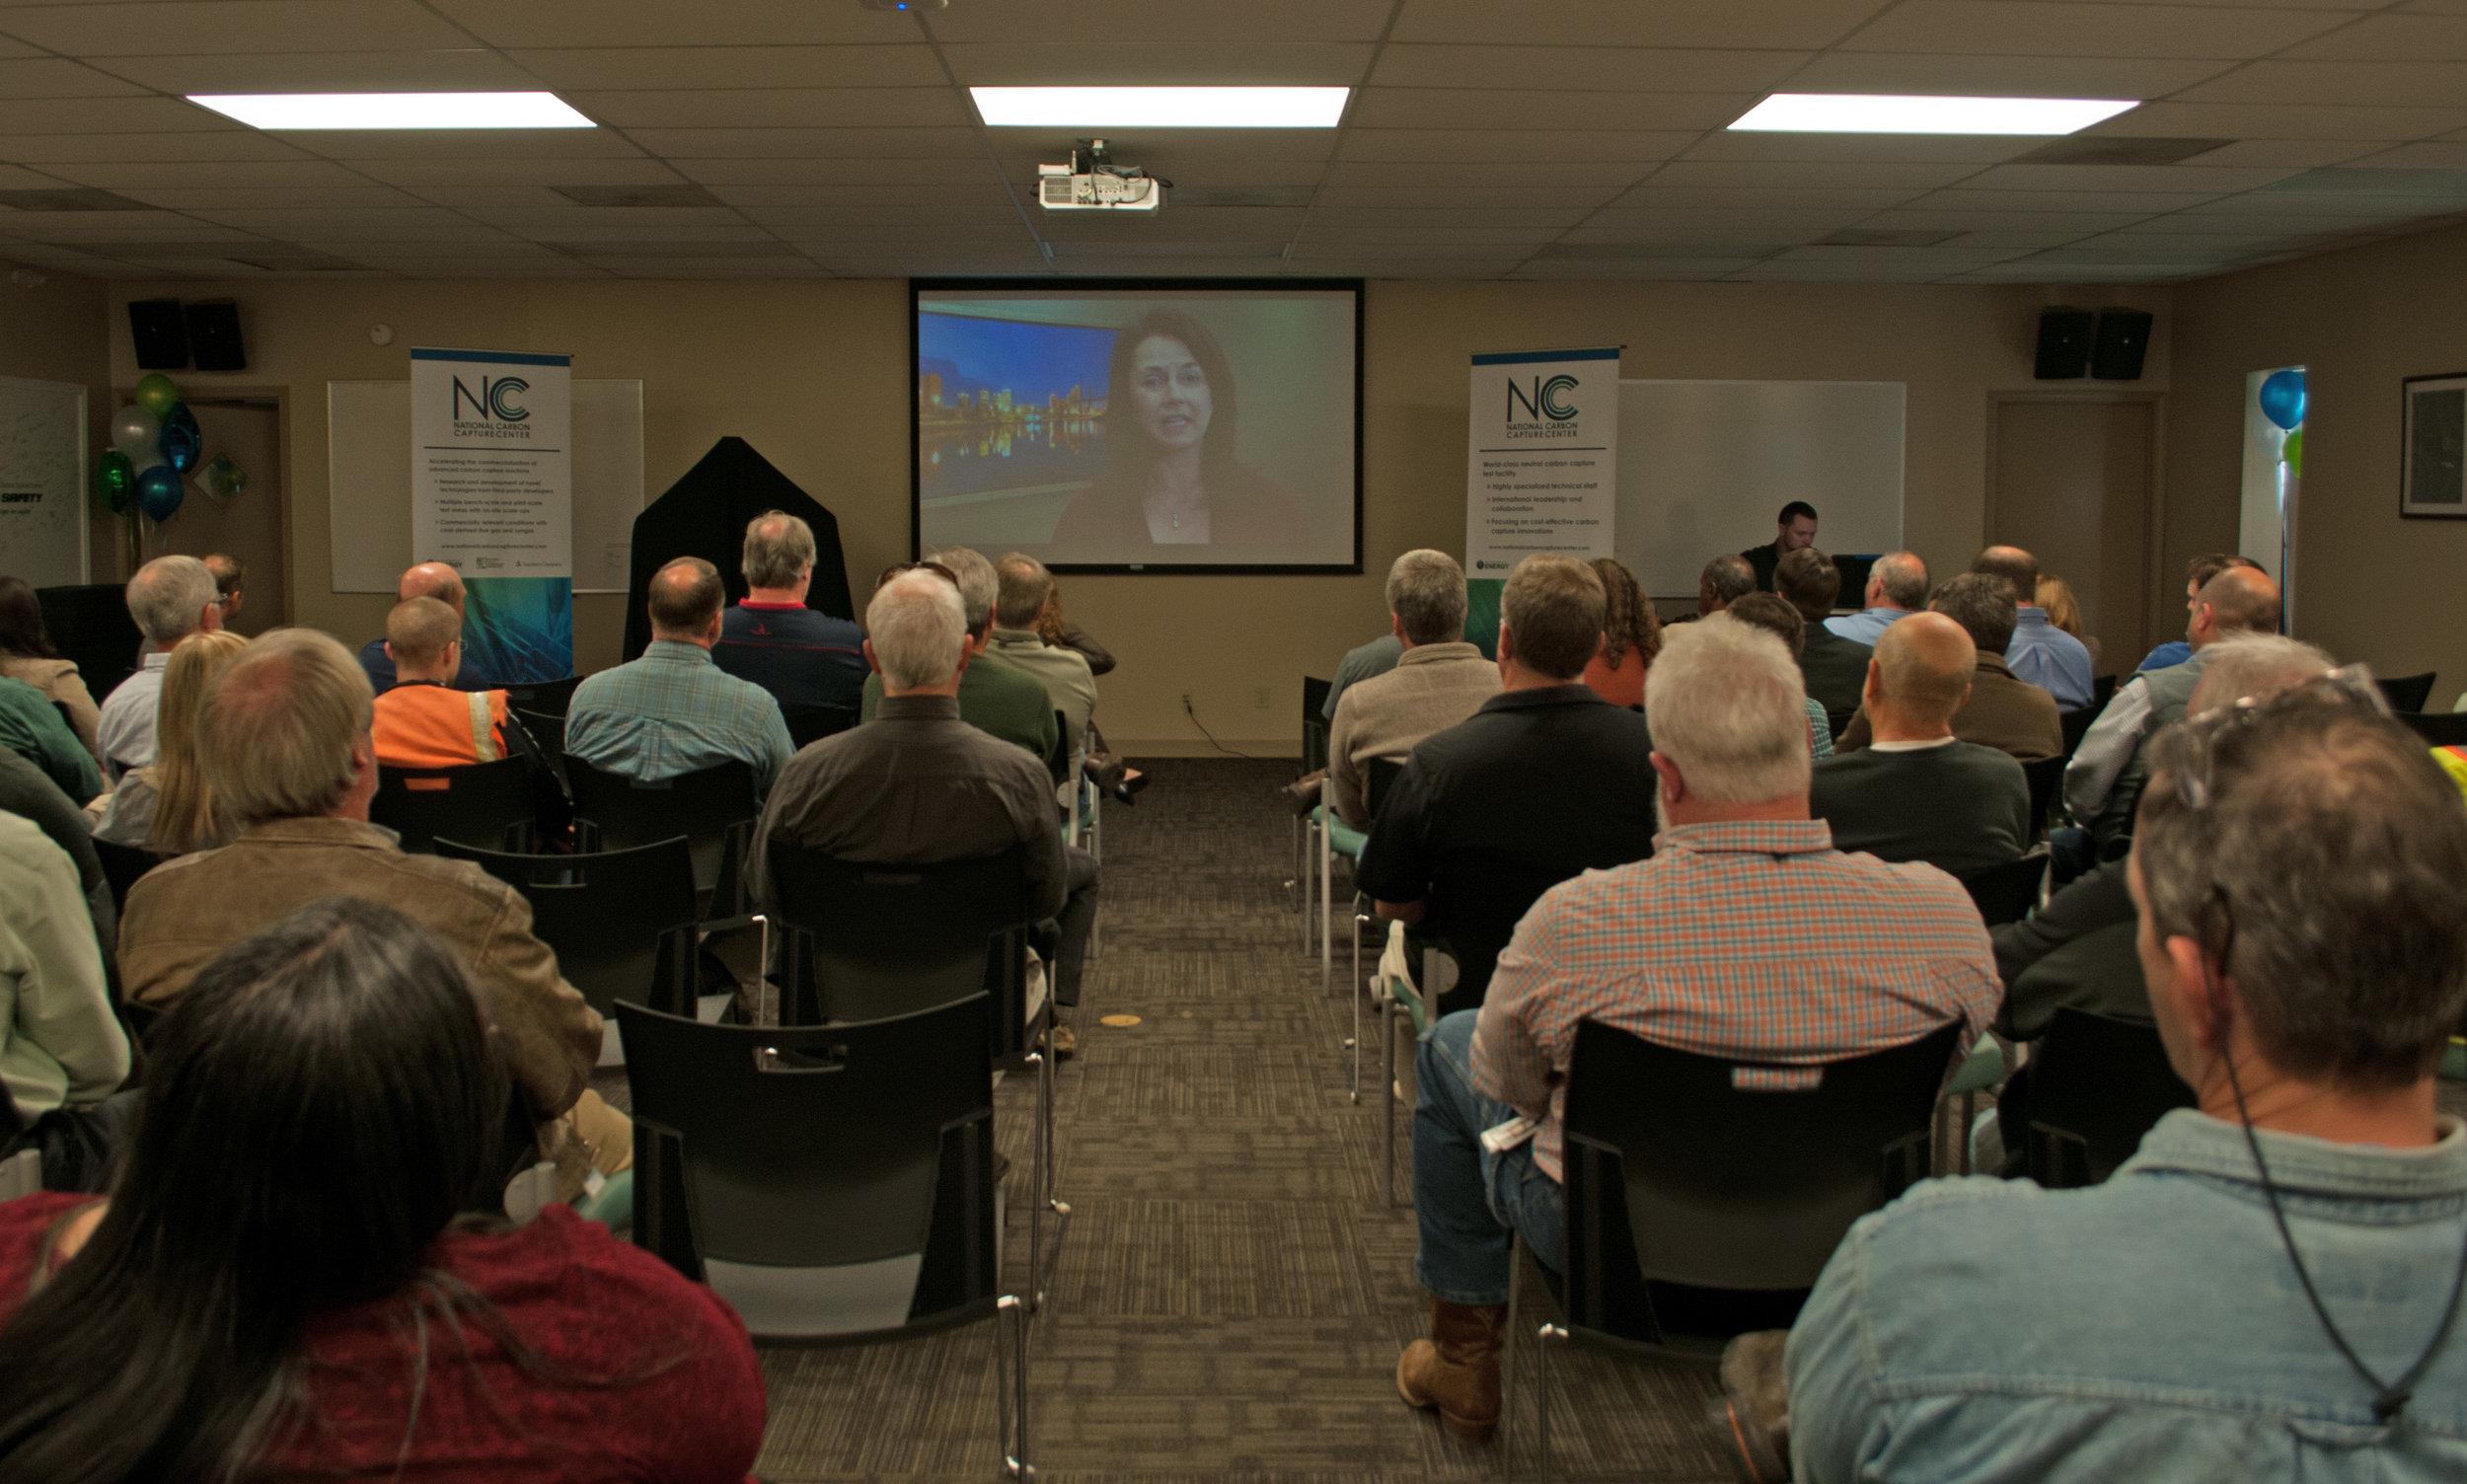 Southern Company Chief Operating Officer Kim Greene congratulates employees via video.